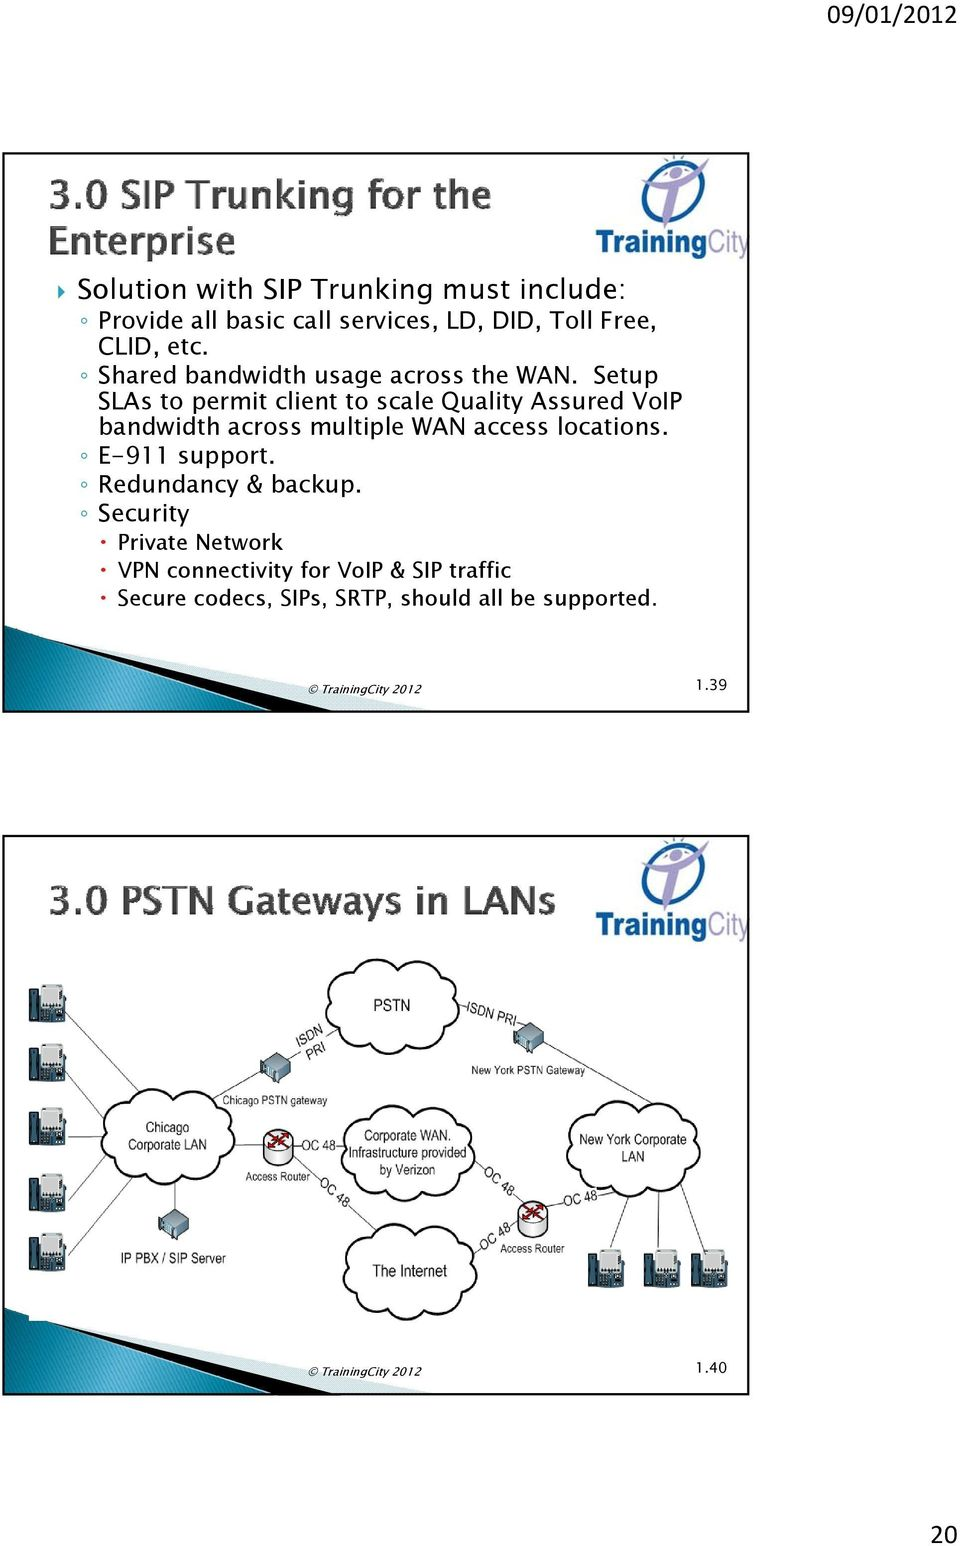 Setup SLAs to permit client to scale Quality Assured VoIP bandwidth across multiple WAN access locations.